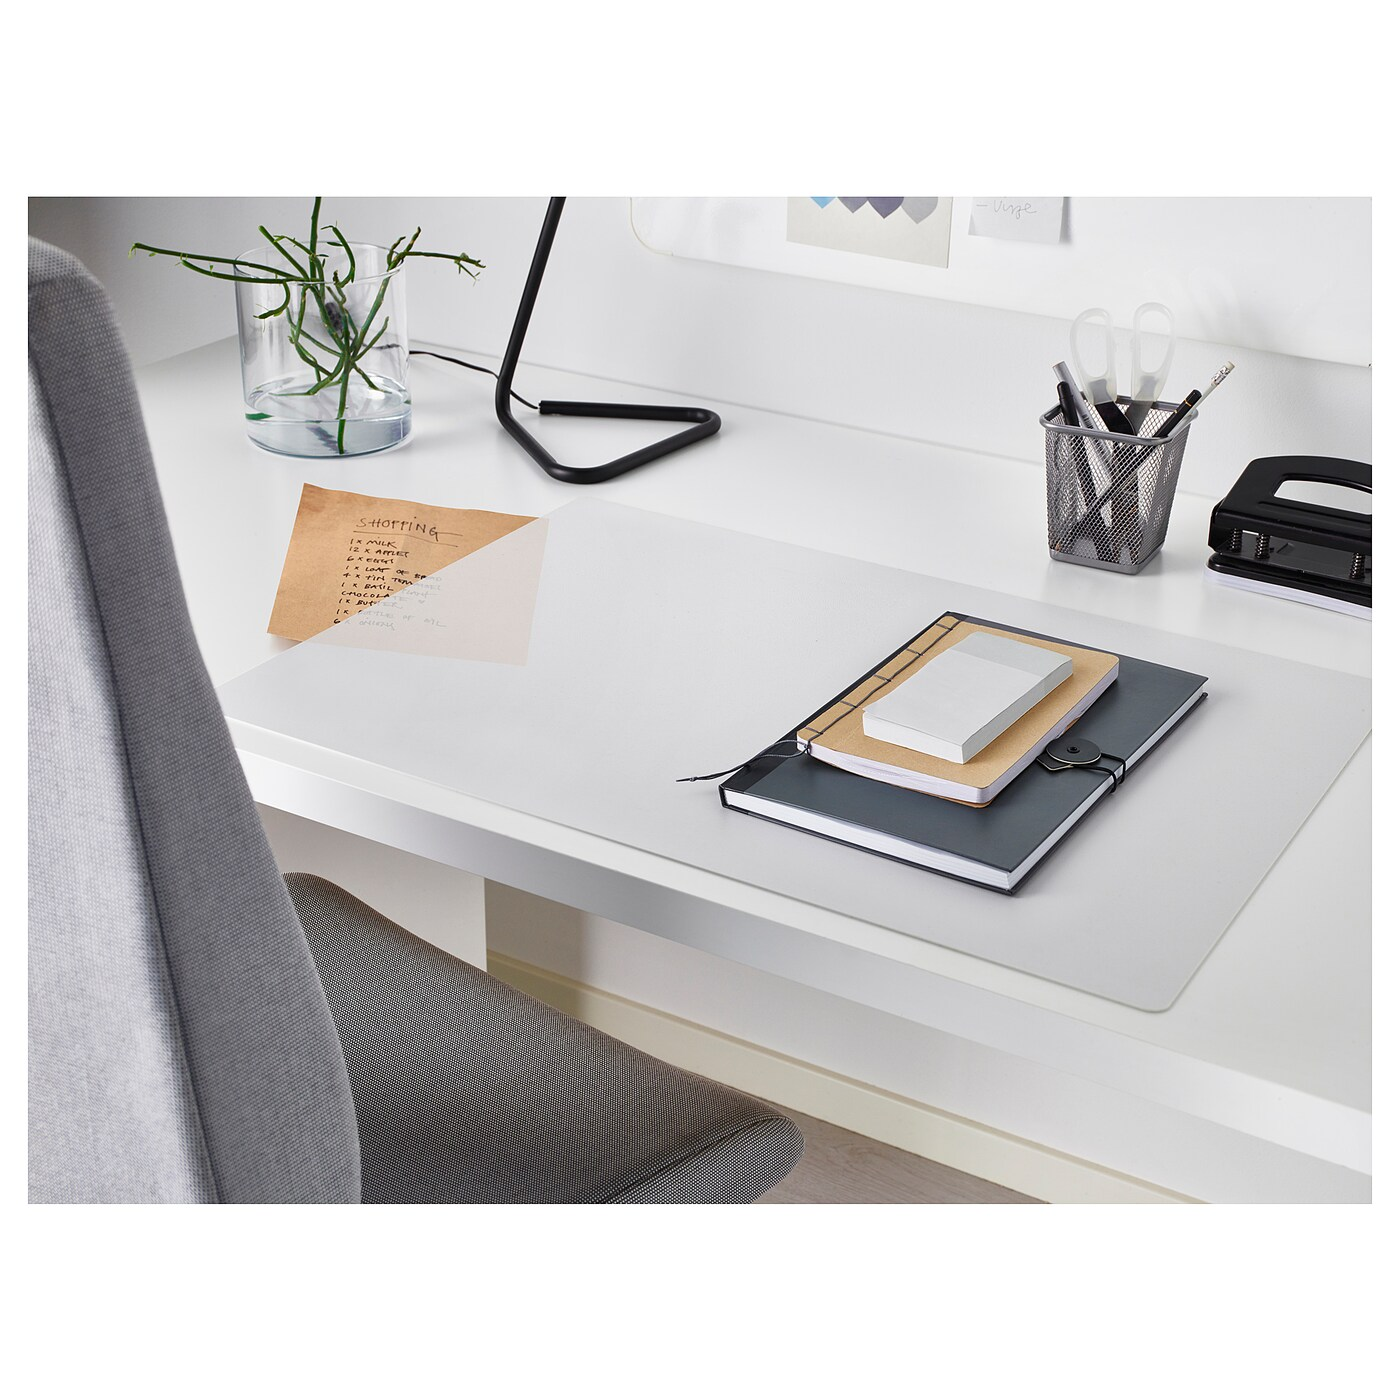 IKEA SKVALLRA desk pad Protects your desk from stains and marks.